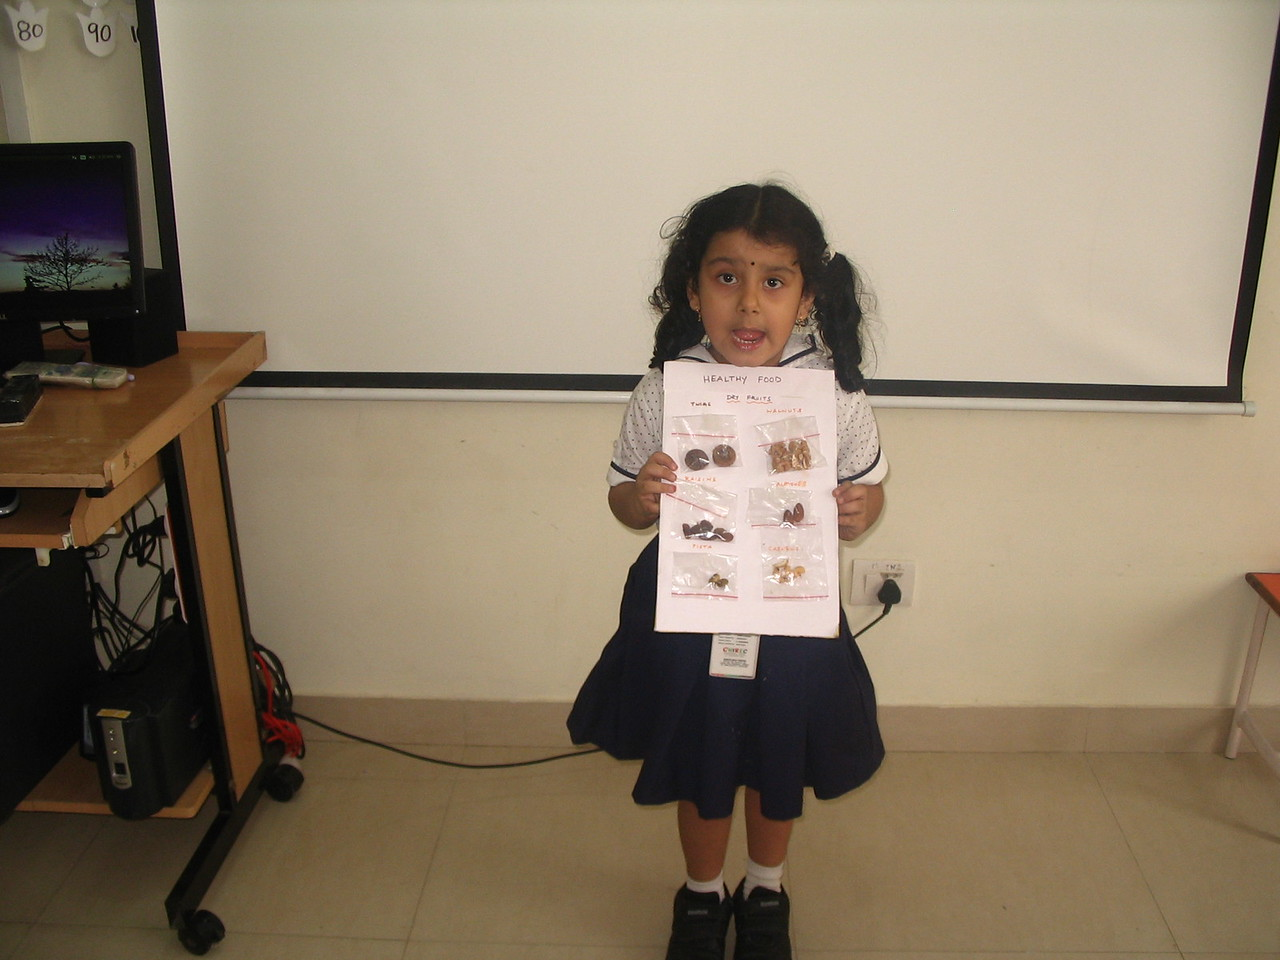 SHOW AND TELL ON HEALTHY AND UNHEALTHY FOOD